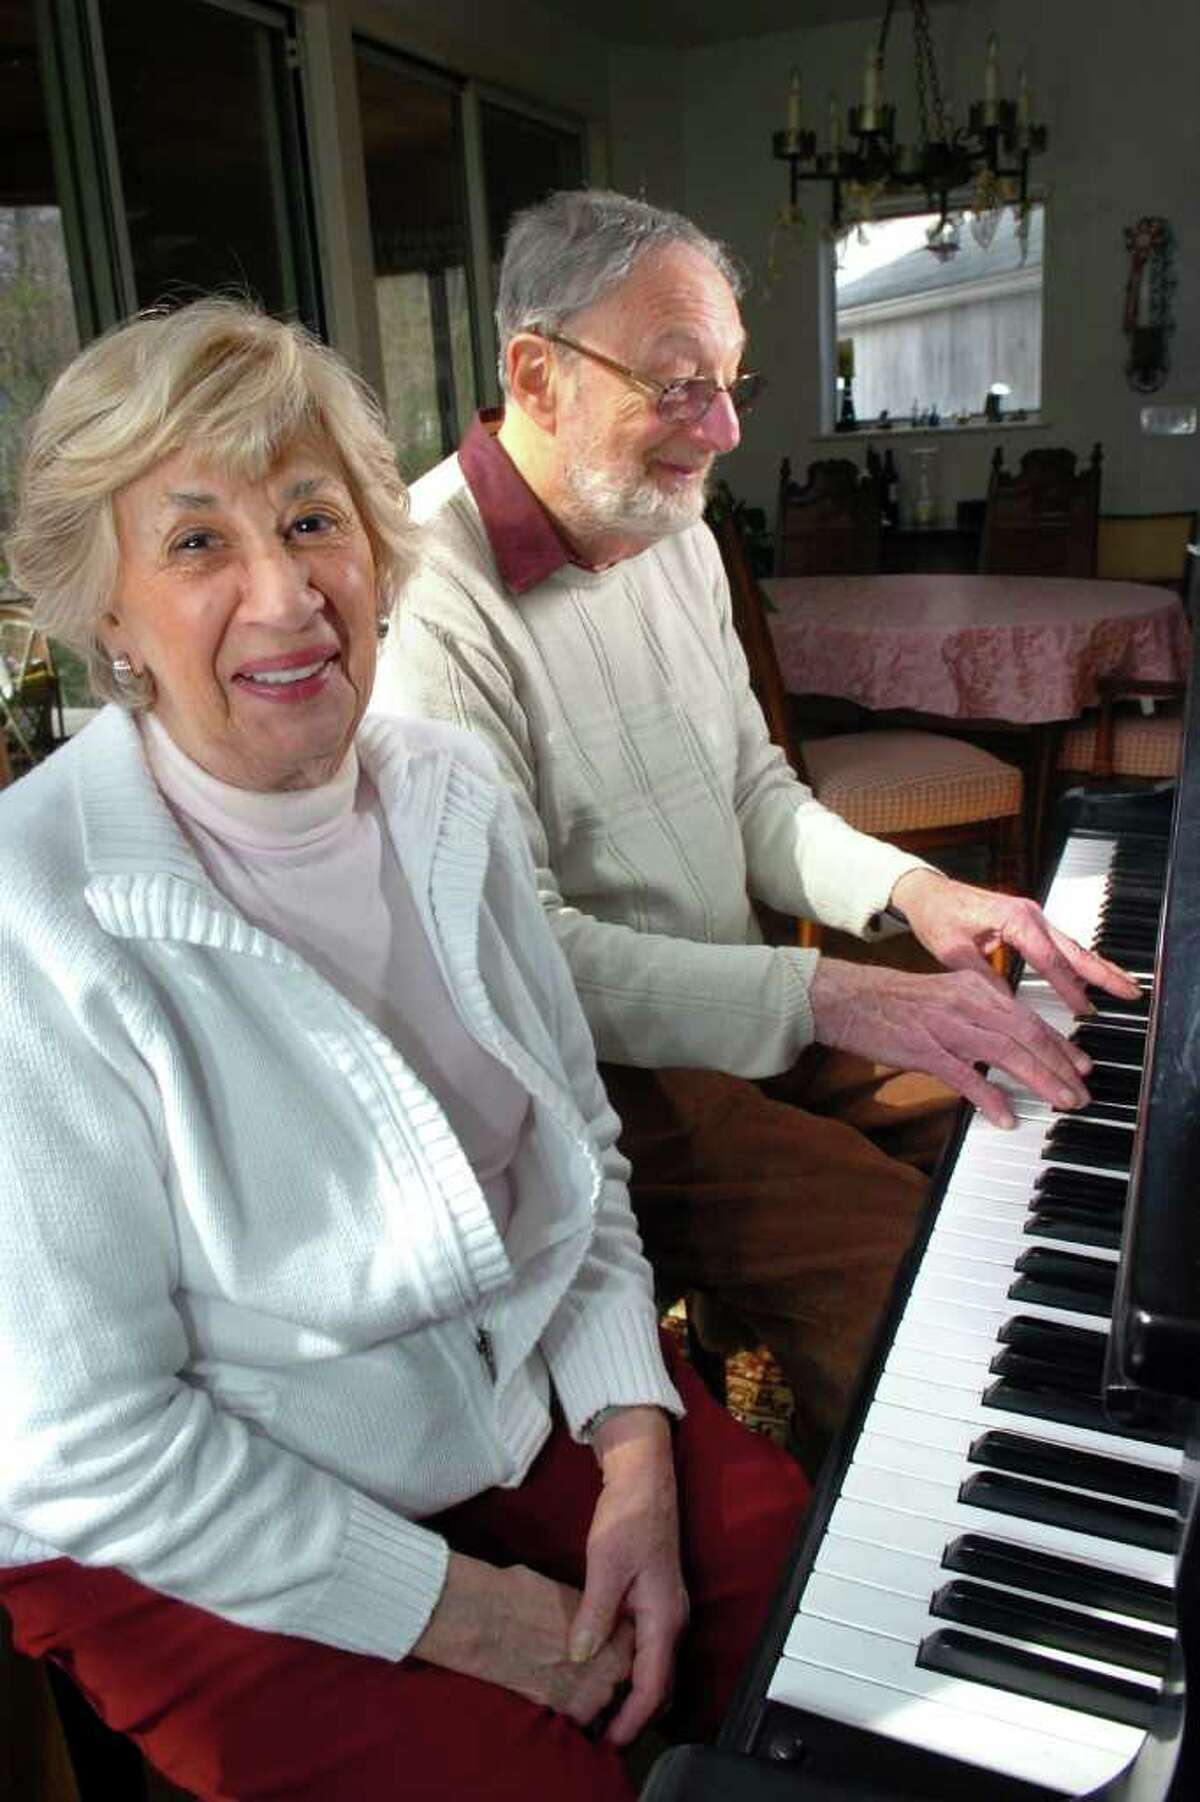 Ted and Jean Simons at the piano in their Westport, Conn. home April 20th, 2011.